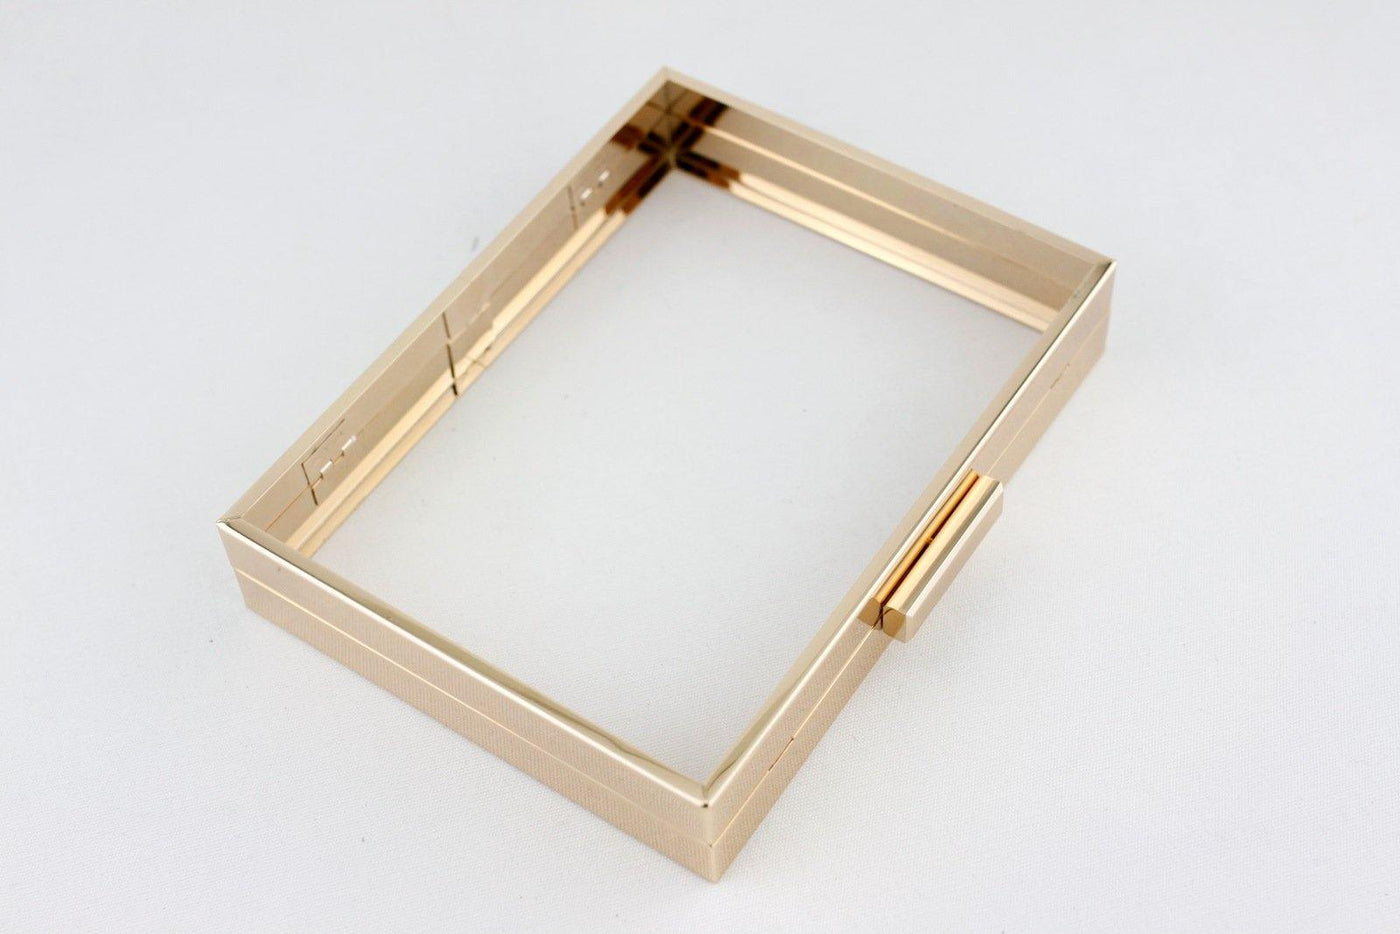 8 Inch Gold Metal Clutch Frame Supply4bag